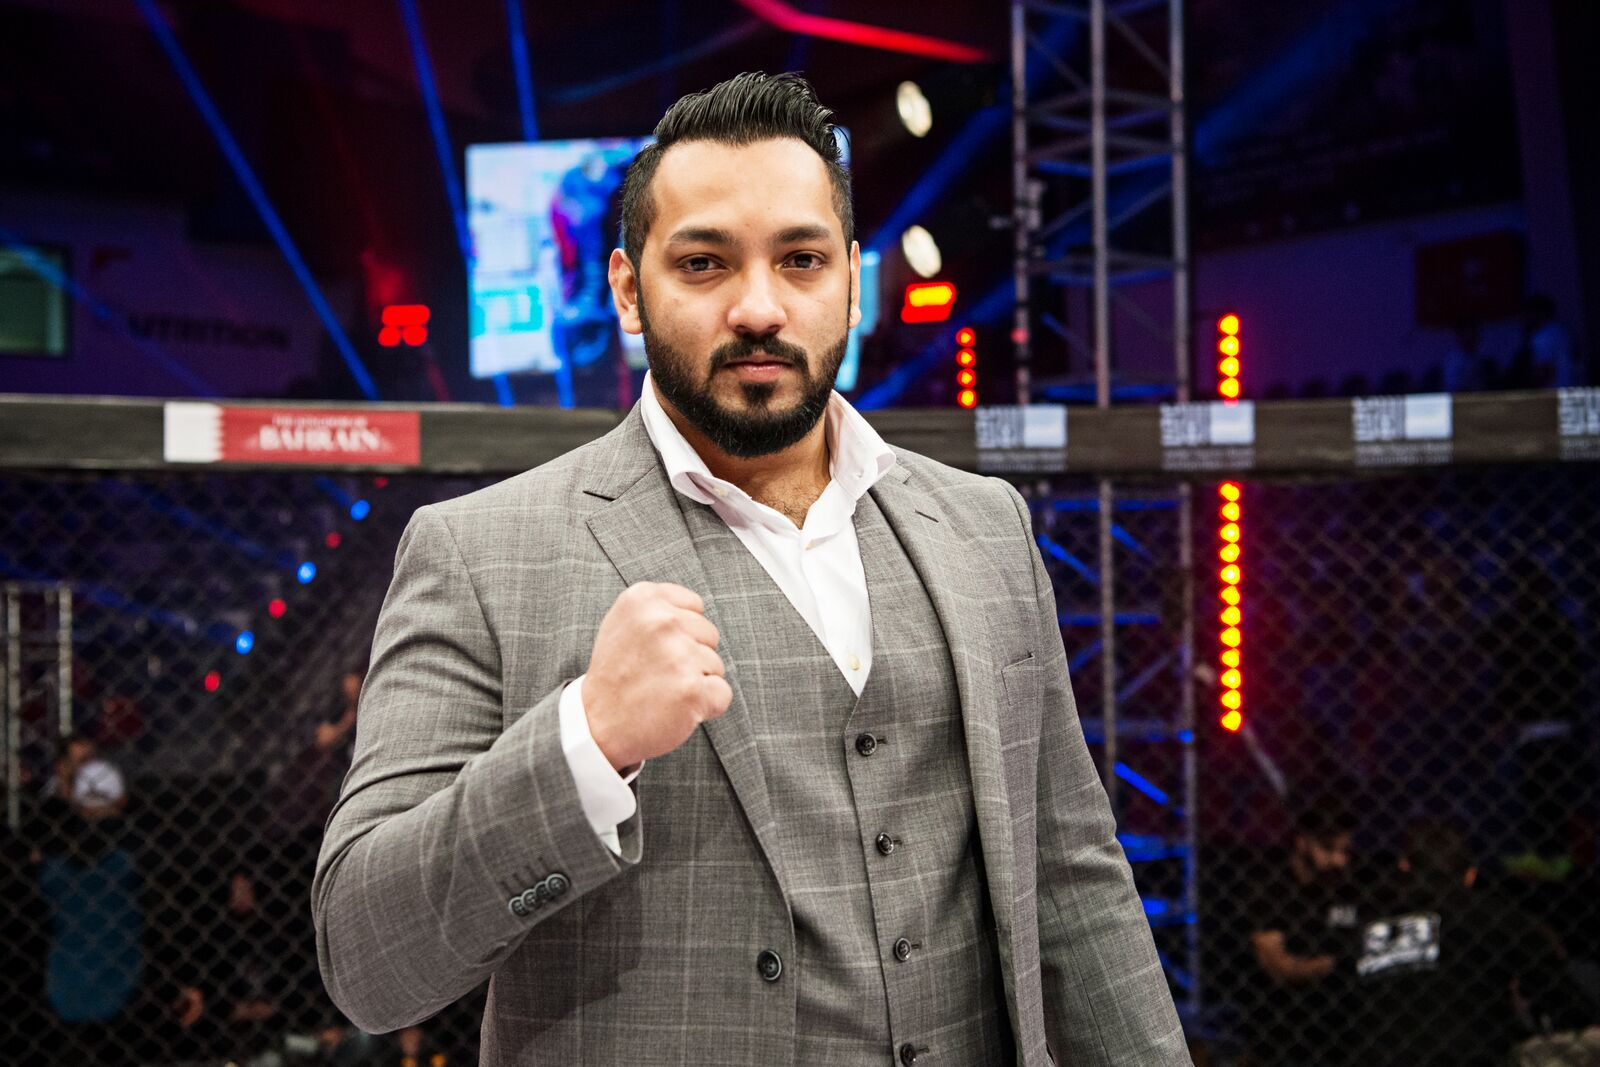 UFC 249 is exactly why we need sports regulation in MMA, says BRAVE CF president -